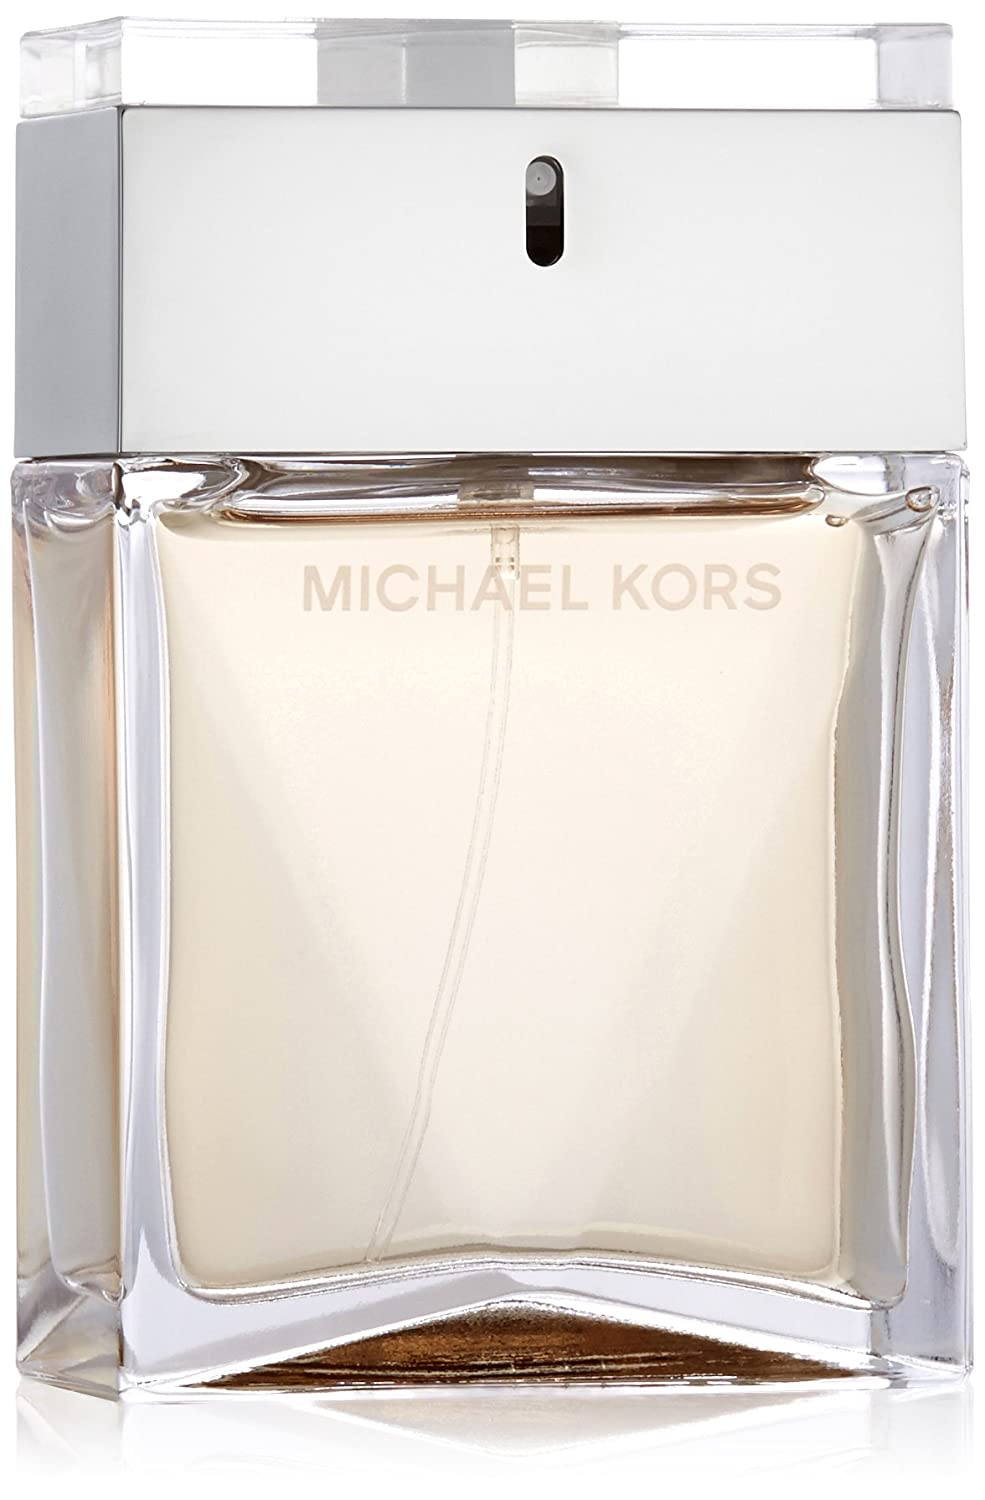 85b61ff10e1a Amazon.com   Michael Kors By Michael Kors For Women. Eau De Parfum Spray  3.4 Ounces   Michael Kors Perfume   Beauty